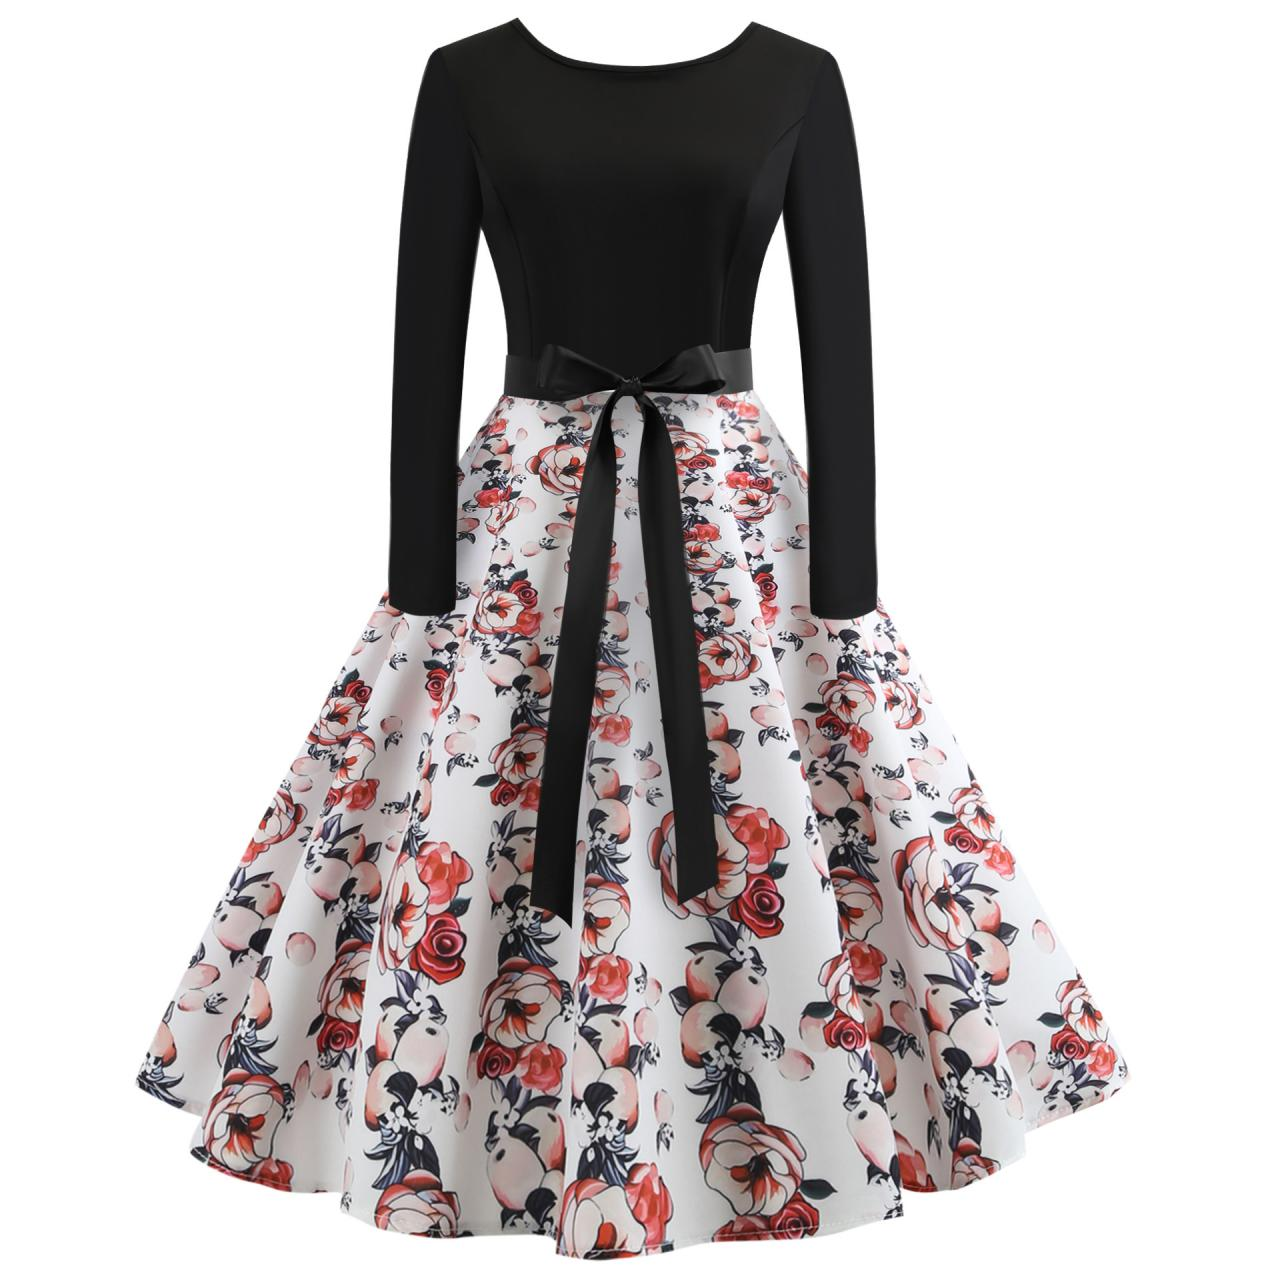 Vintage Floral Printed Dress Autumn Long Sleeve Belted Rockabilly Casual Slim A-Line Formal Party Dress 1#